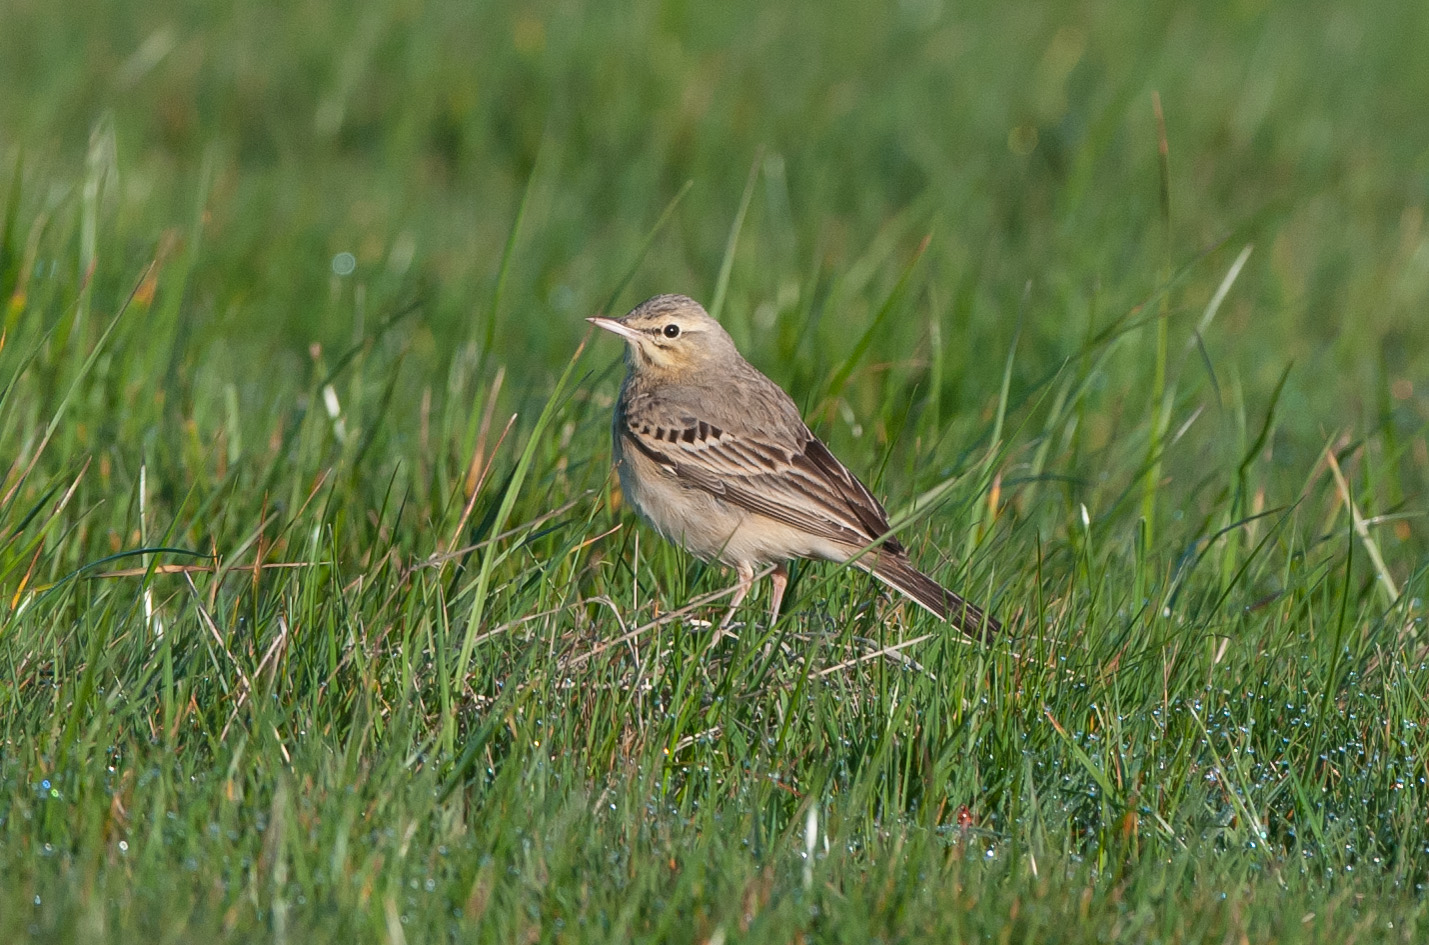 Part of the 'supporting cast' for the crag martin at Flamborough. This tawny pipit showed very well on the Sunday the crag martin disappeared.